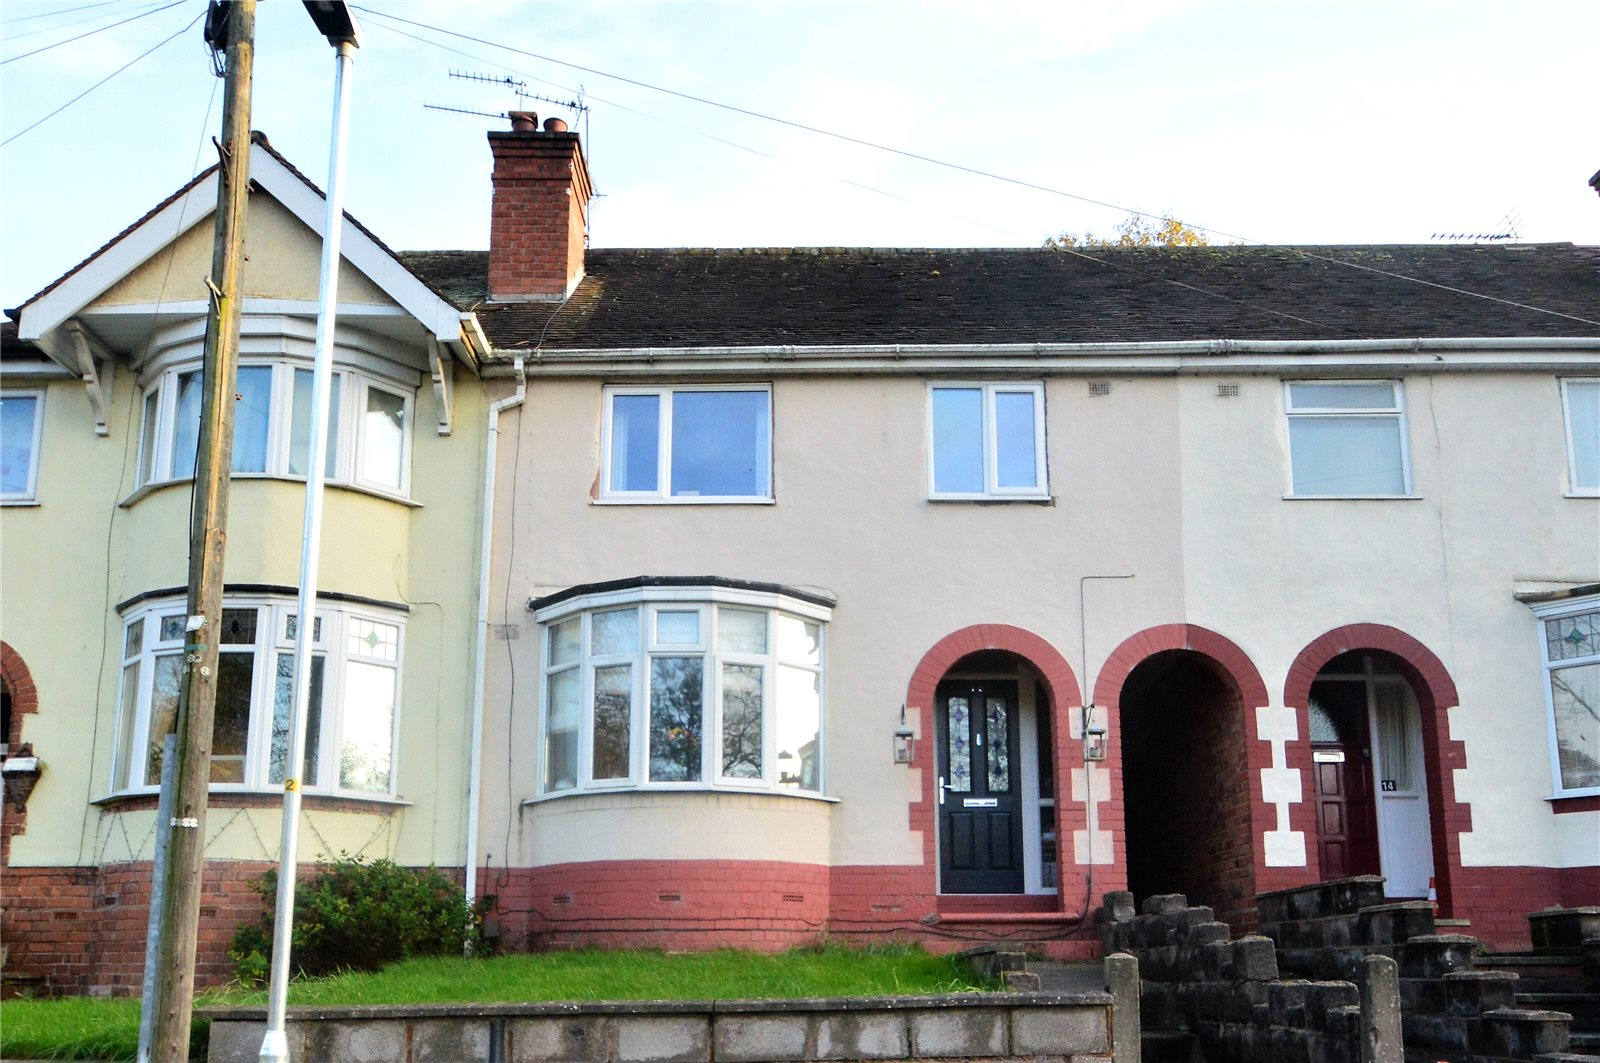 3 Bedrooms Terraced House for sale in 15 Broadwaters Drive, Kidderminster, Worcestershire, DY10